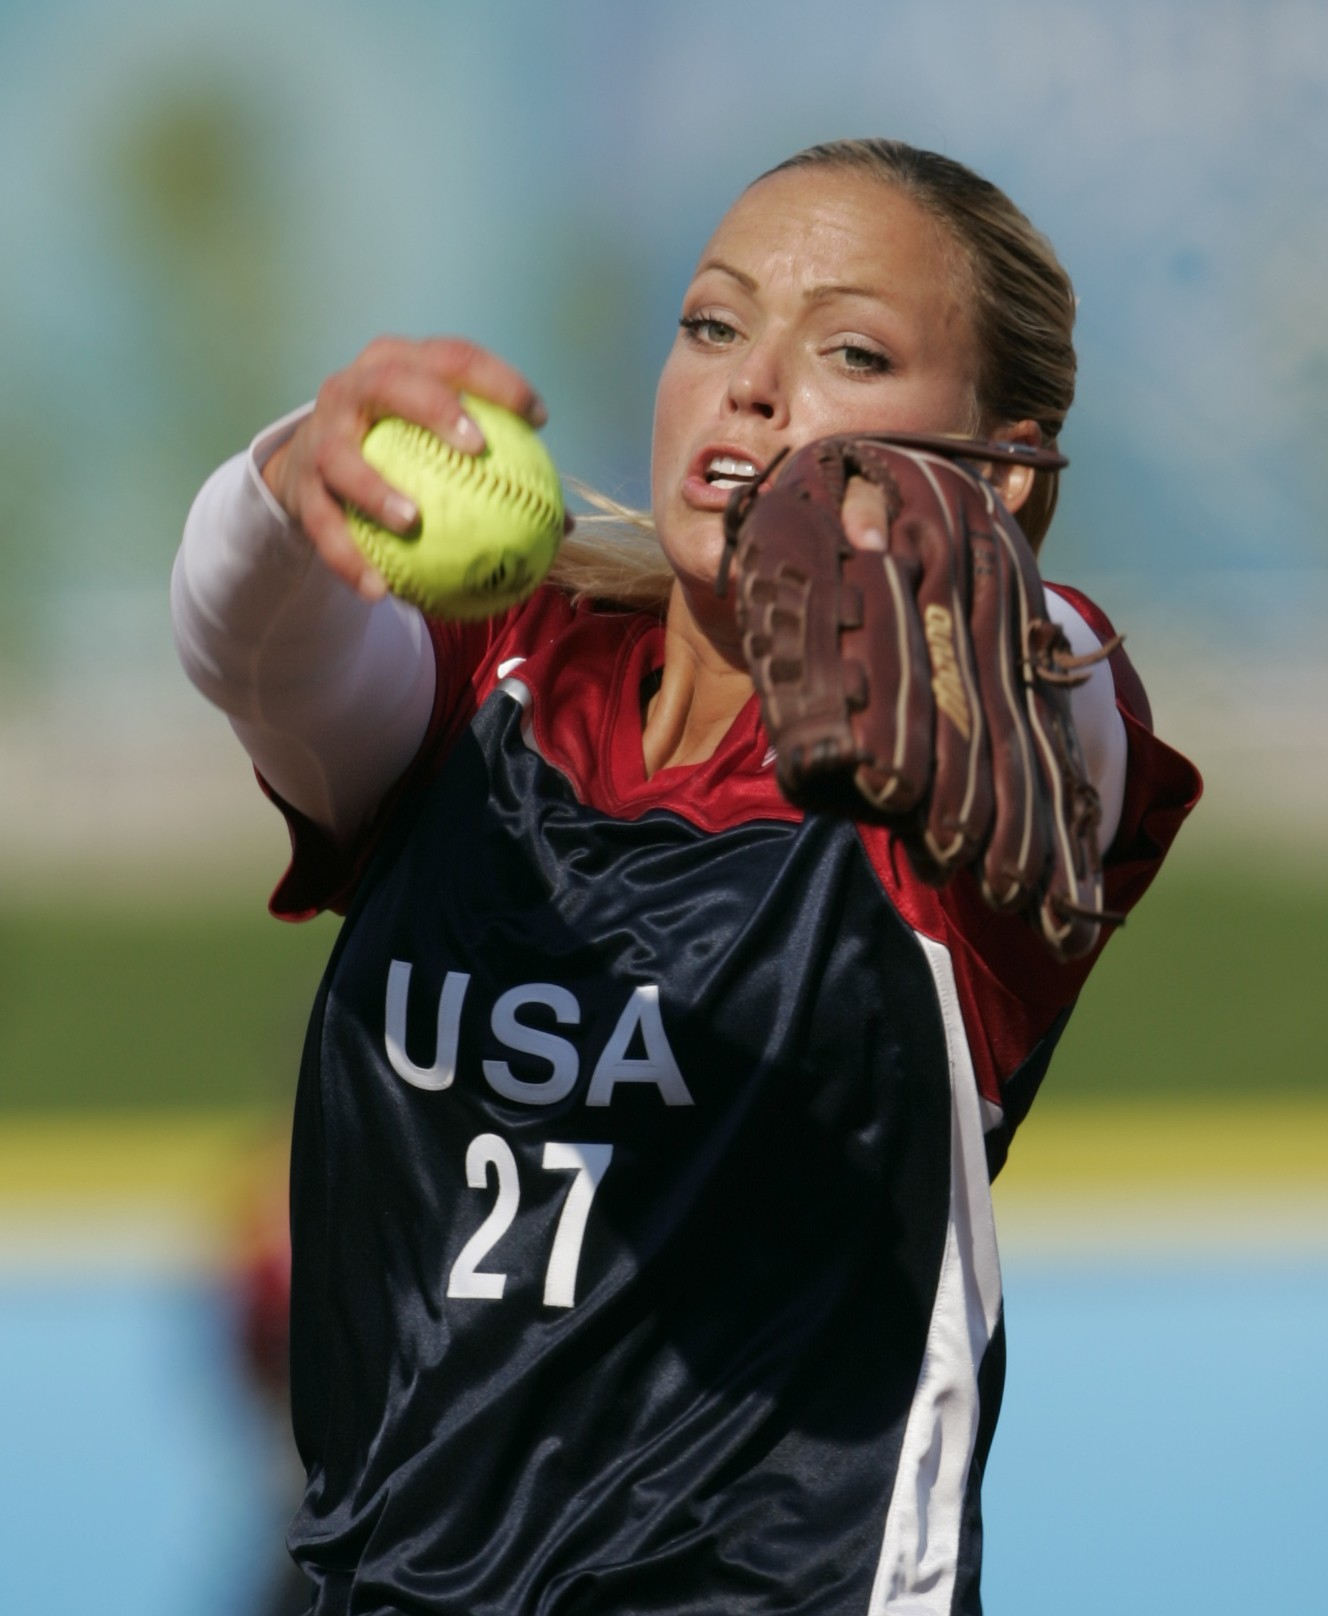 Jennie Finch helped pitched the U.S. team to a gold medal at the 2004 Olympics in Athens. (Photo: Darr Beiser, USA TODAY)